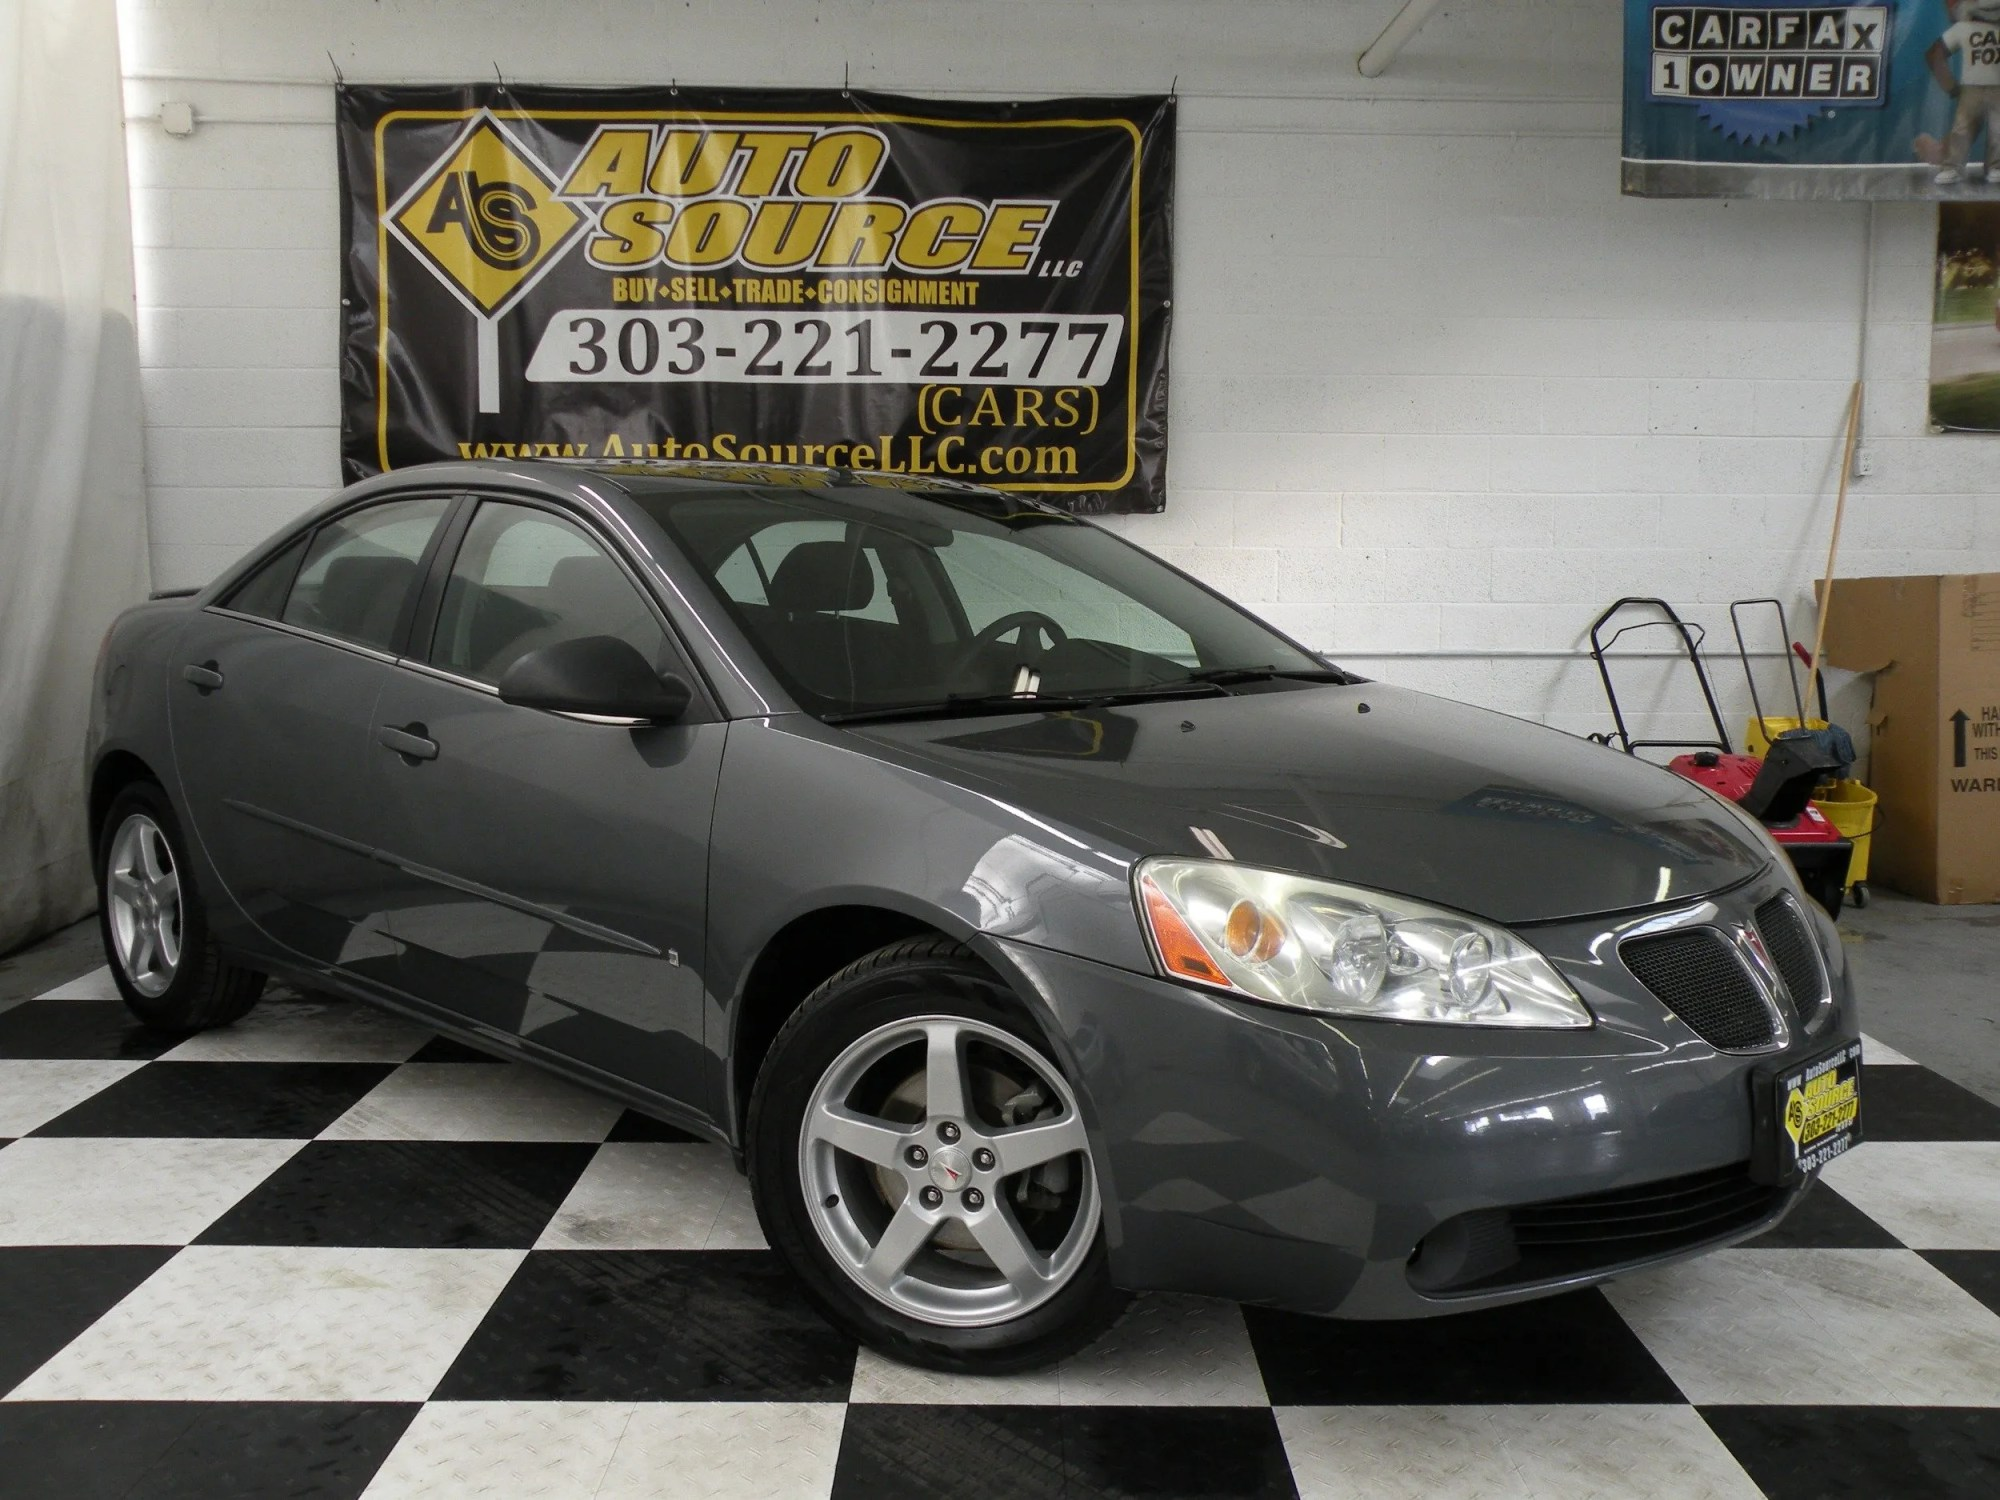 2007 pontiac g6 ultra clean 1 owner car with warranty included  [ 2000 x 1500 Pixel ]